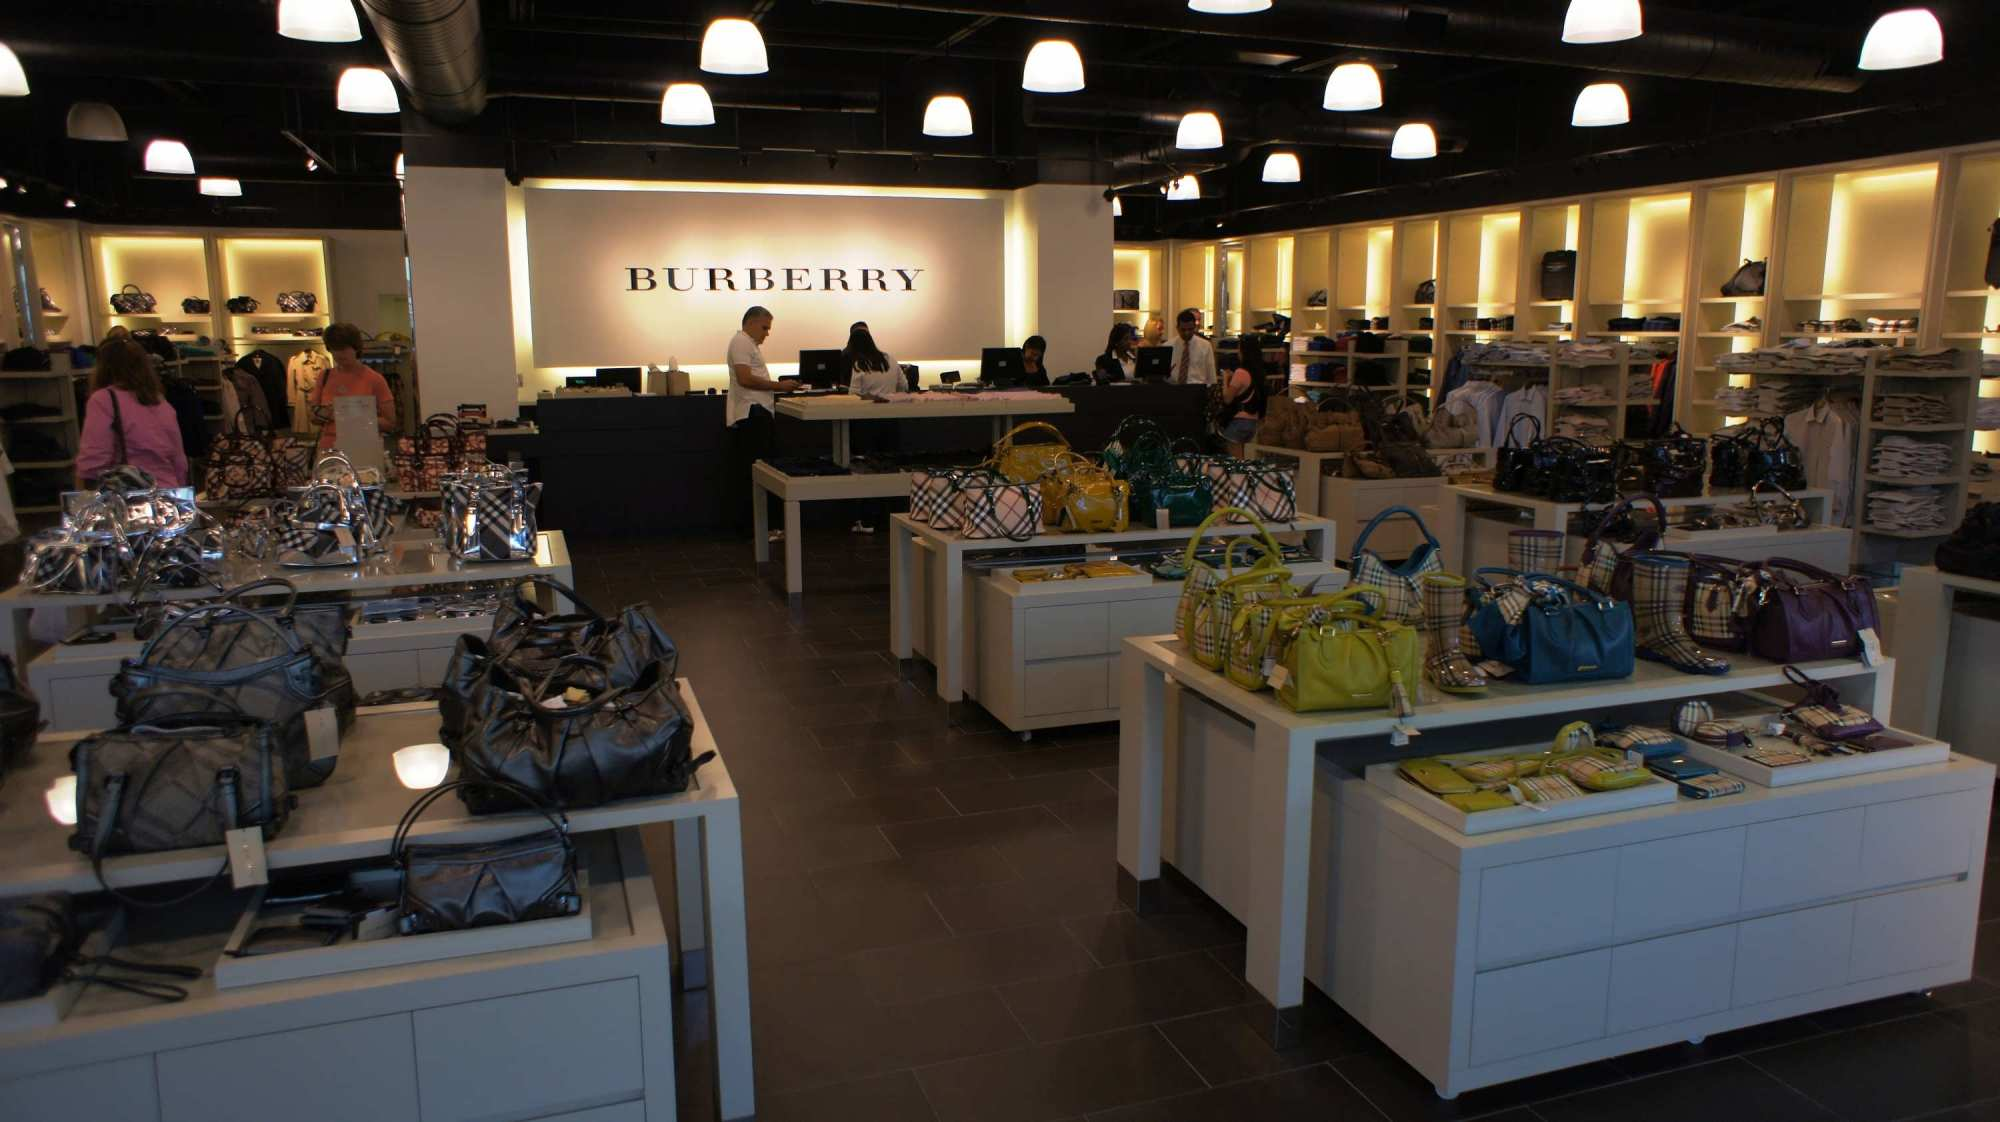 closest oakley store to me n5qp  Orlando Premium Outlets Vineland Ave: Inside the Burberry store